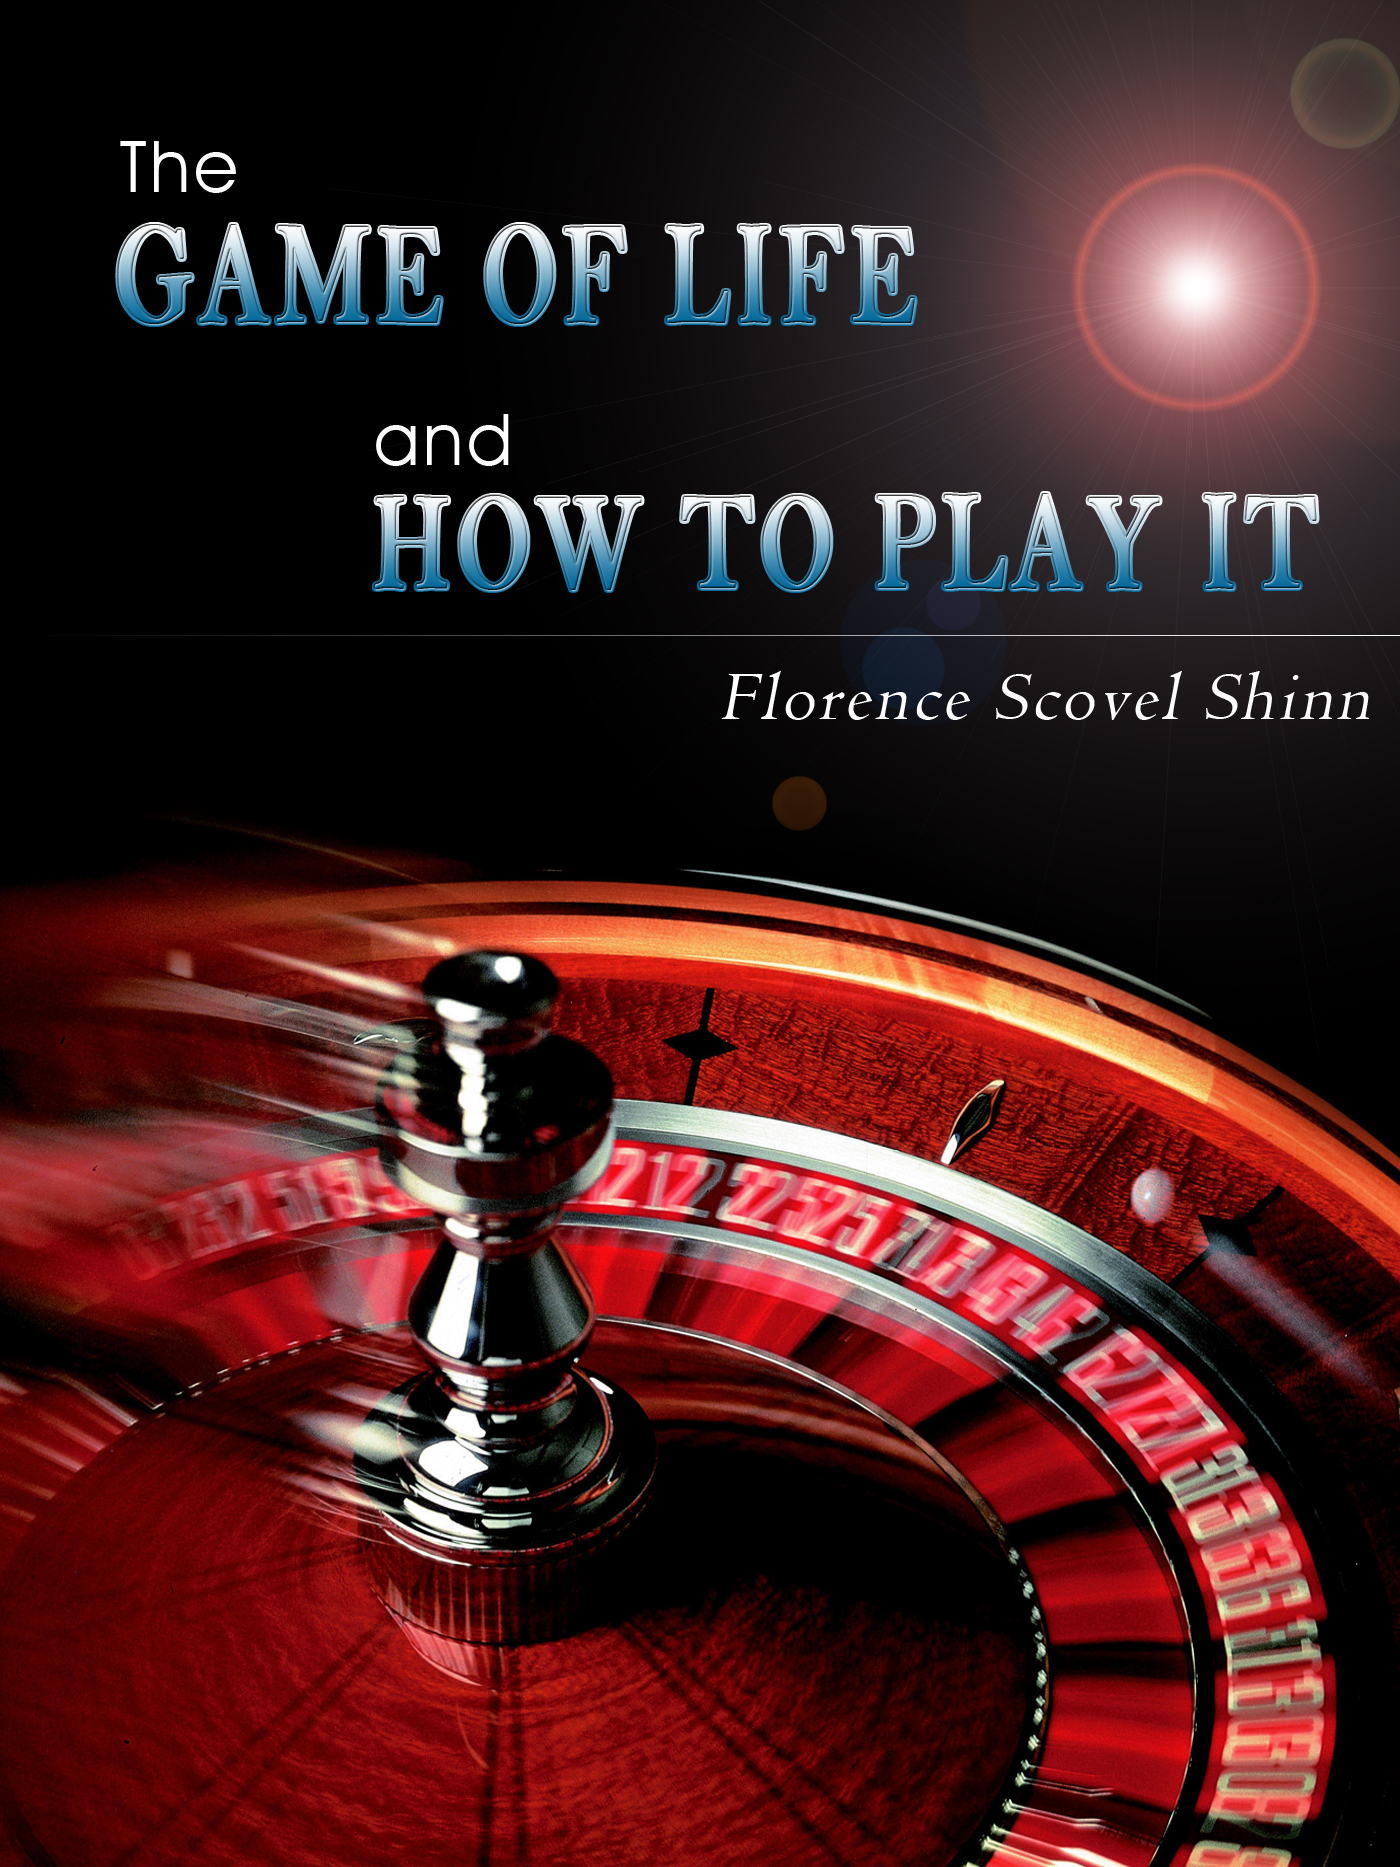 The Game of Life And How To Play It By: Florence Scovel Shinn